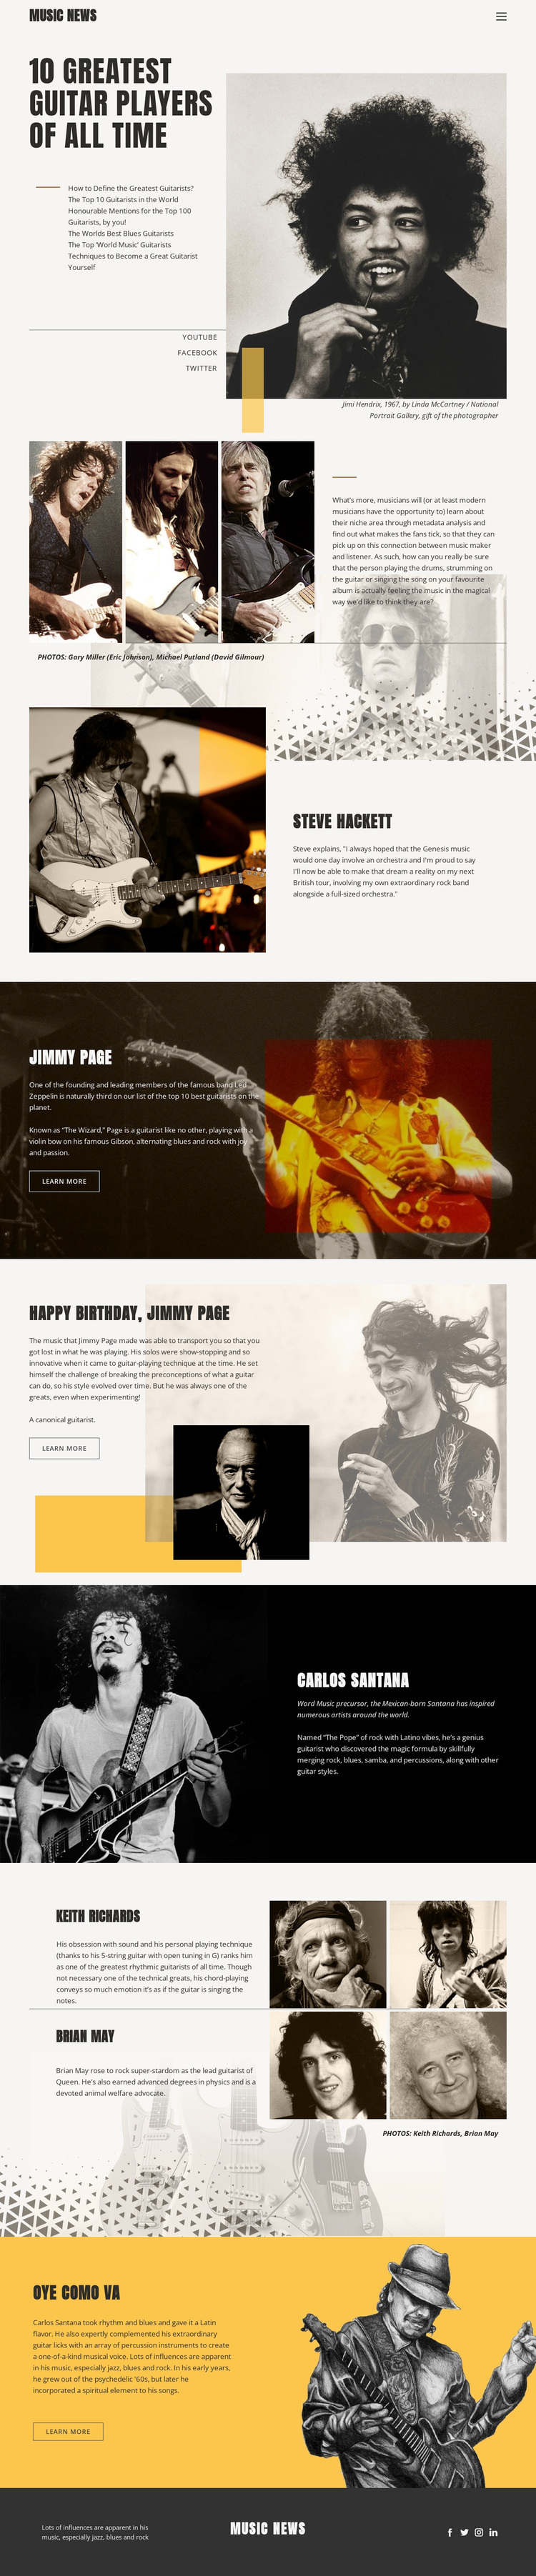 The Top Guitar Players Template